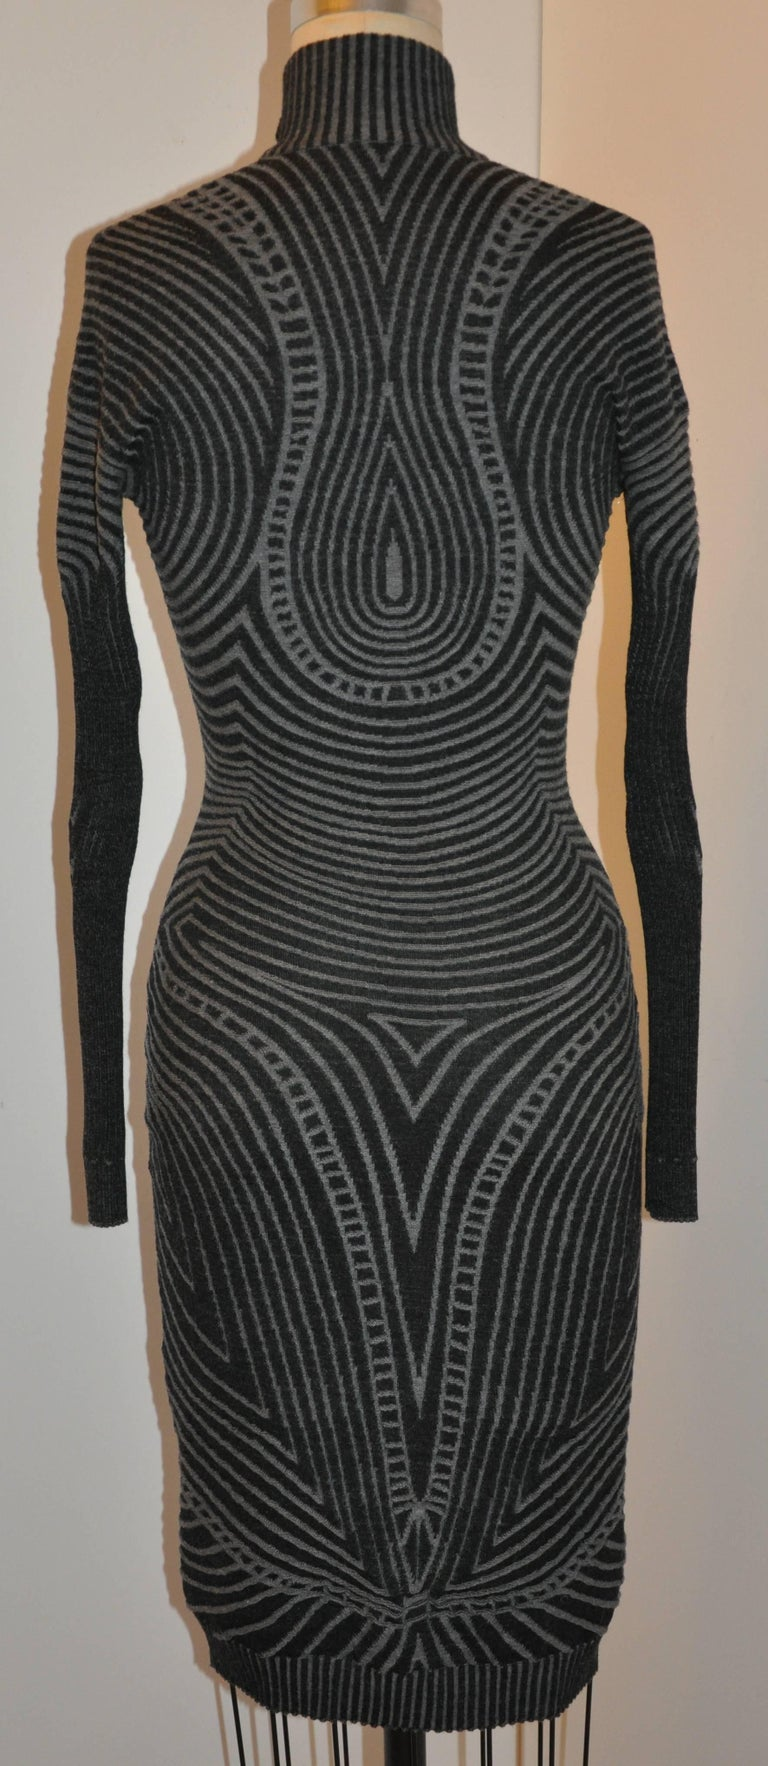 Alexander McQueen's wonderful elegant yet sexy charcoal and gray body-hugging bold abstract high-neck deep zipper front can be worn from day into the evening hours. During the day, wear this merino-wool dress zippered, and as the evening comes